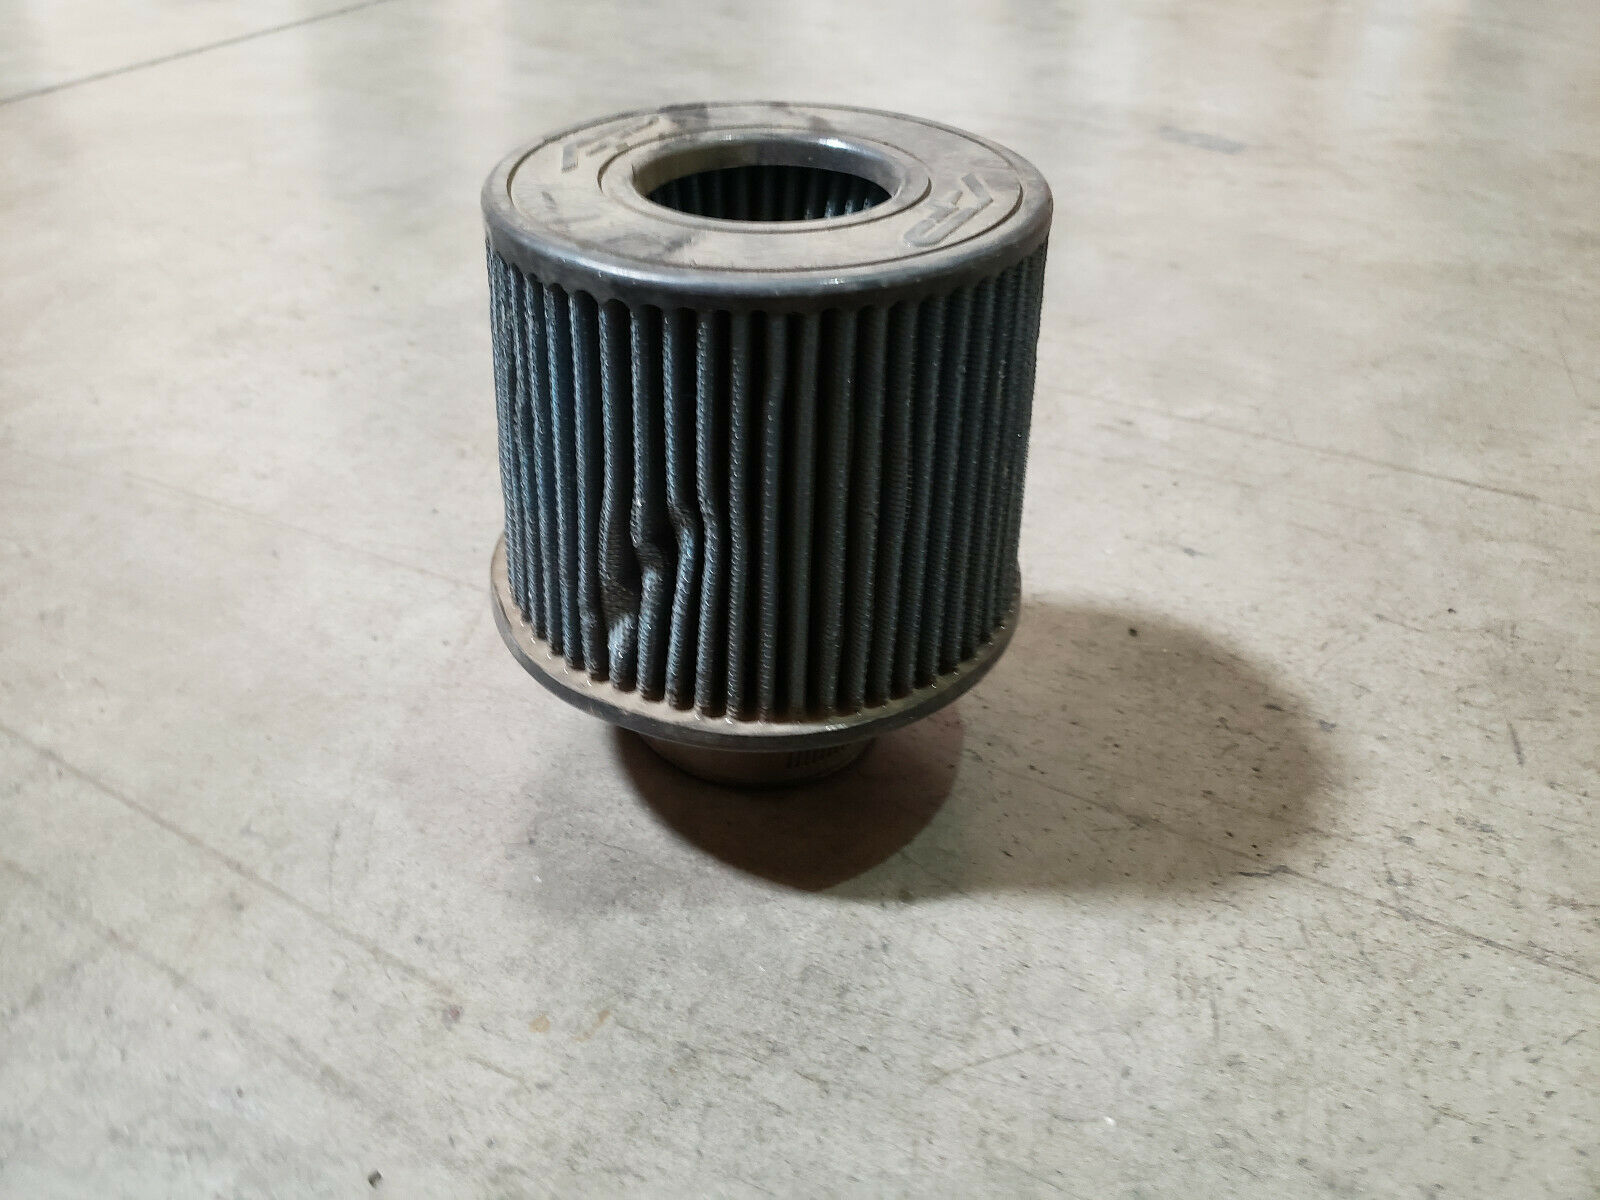 Agency Power 392904196000 Universal Dry Air Filter - 2.5in Inlet 5.5in Diameter 6.5in Length CLEARANCE